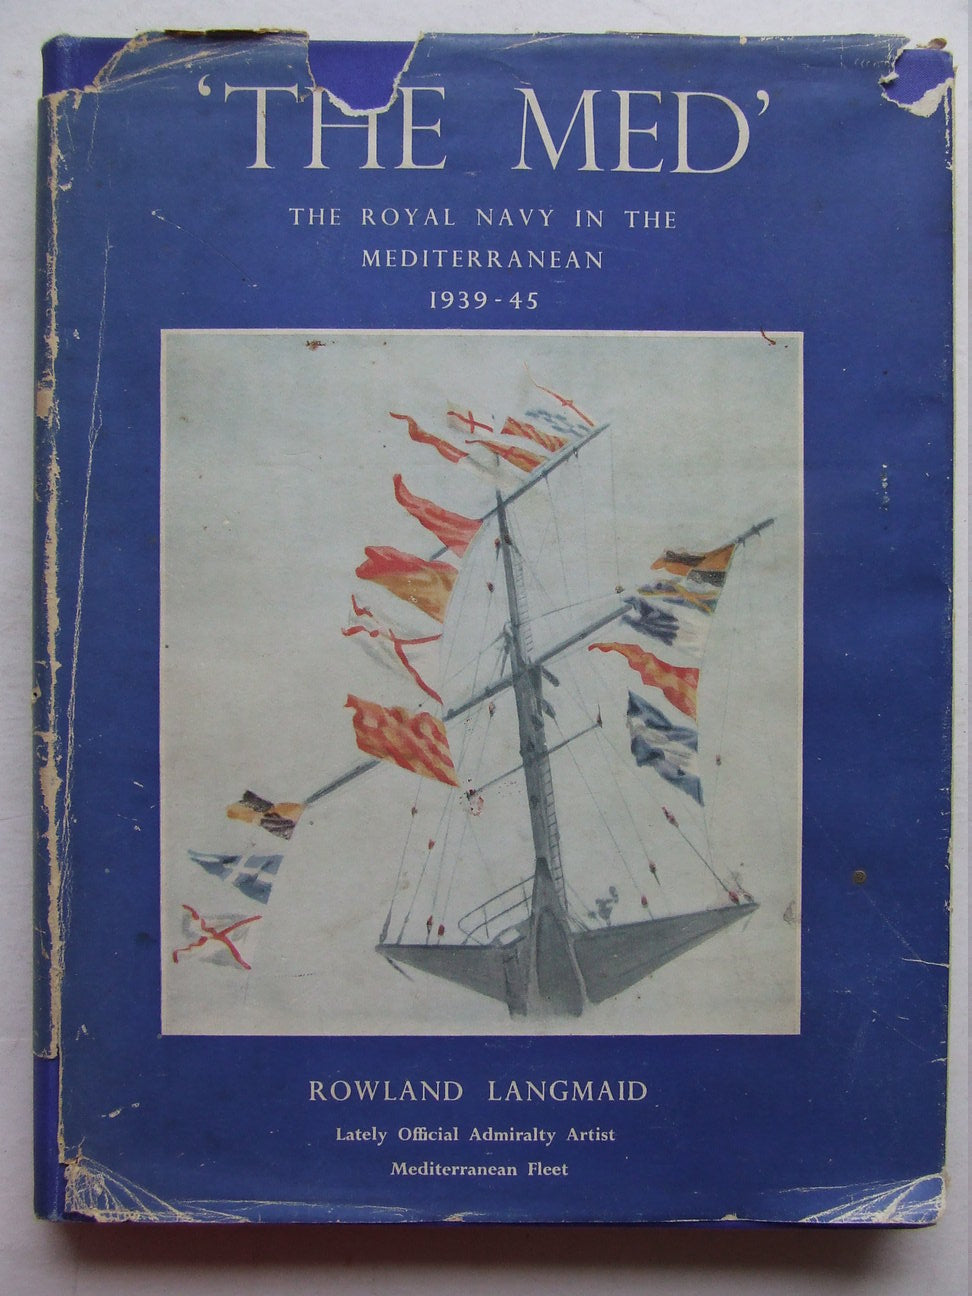 'The Med', the Royal Navy in the Mediterranean 1939-1945